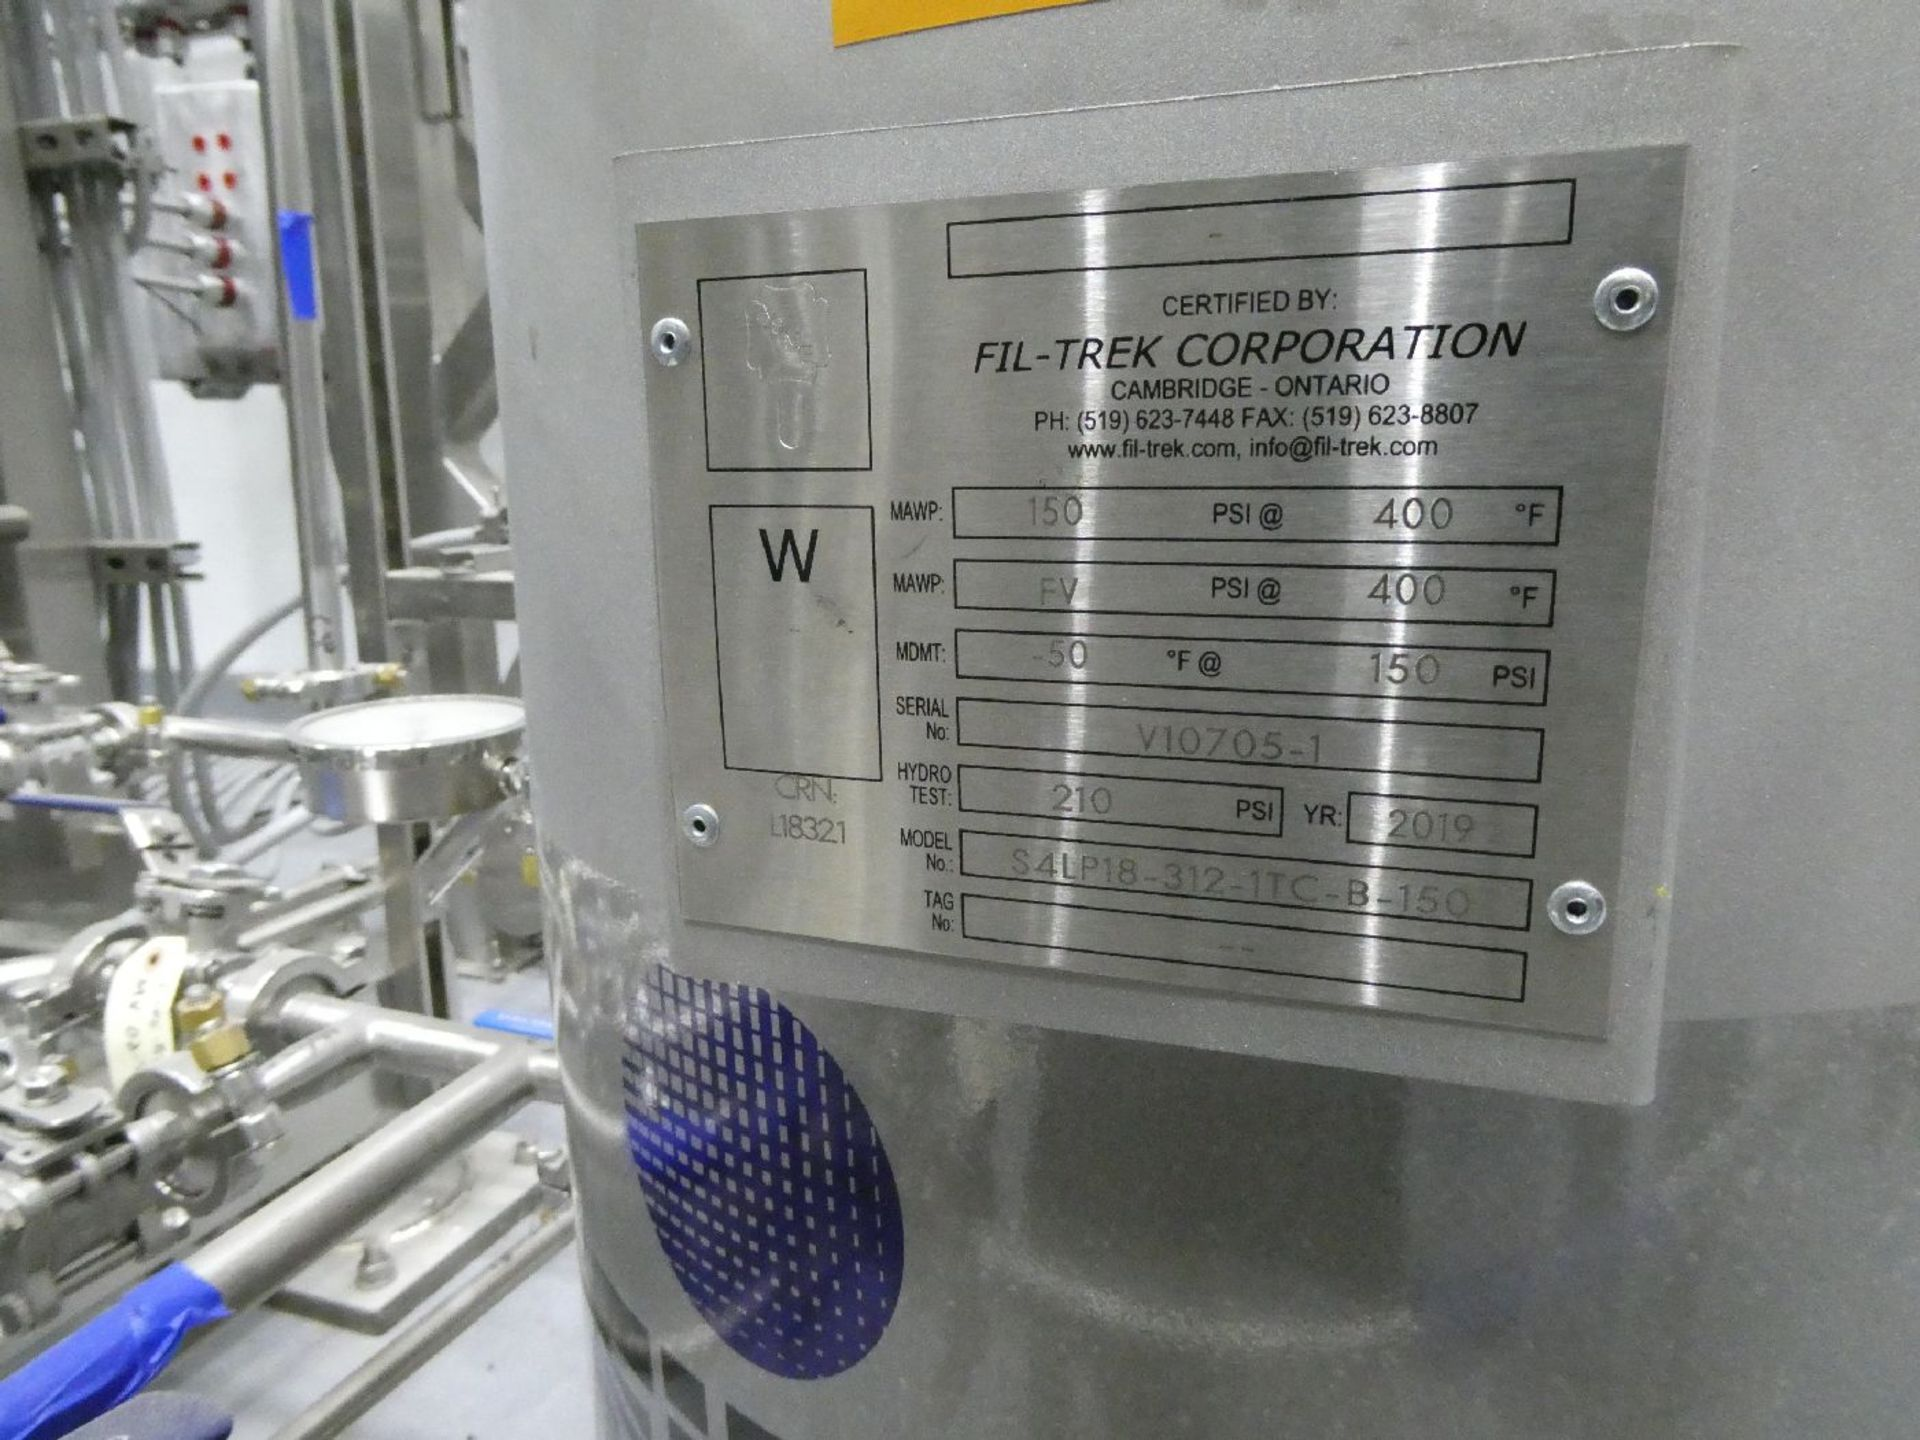 ROTAX Closed Loop Solvent Based Continuous Oil Extraction System - Image 18 of 68